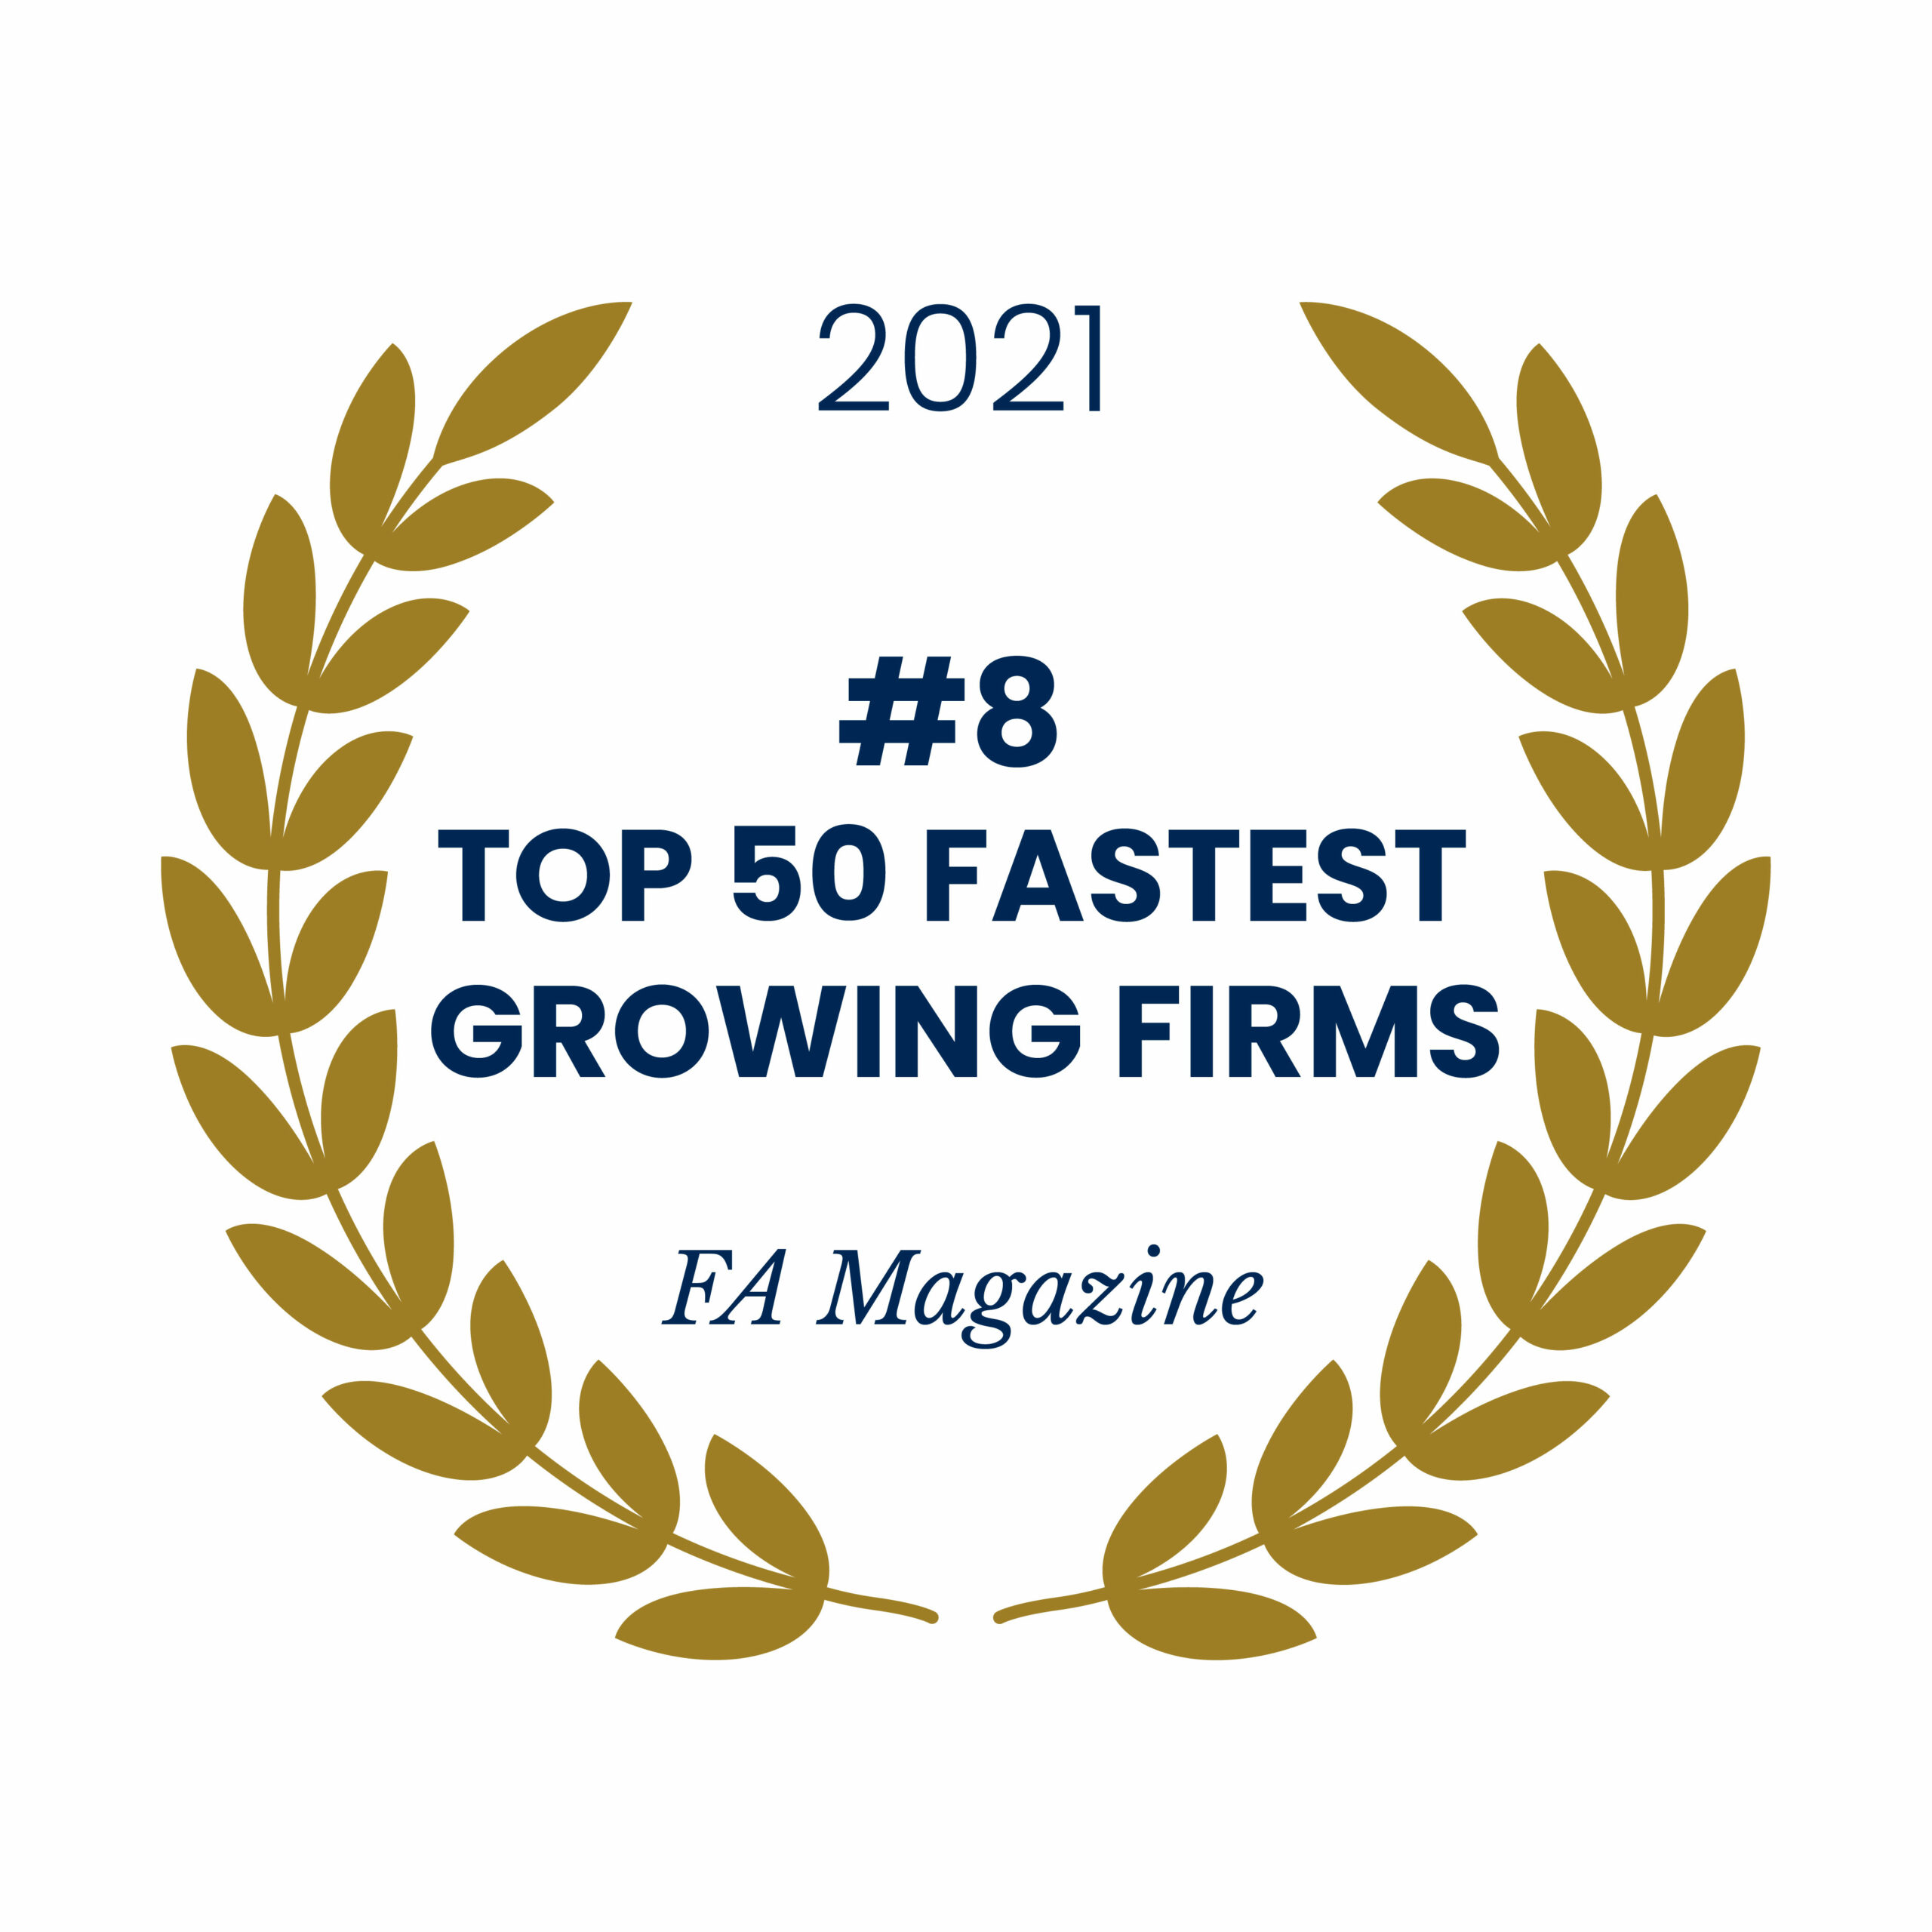 Award emblem for ranking #8 of Top 50 Fast Growing Firms by FA Magazine